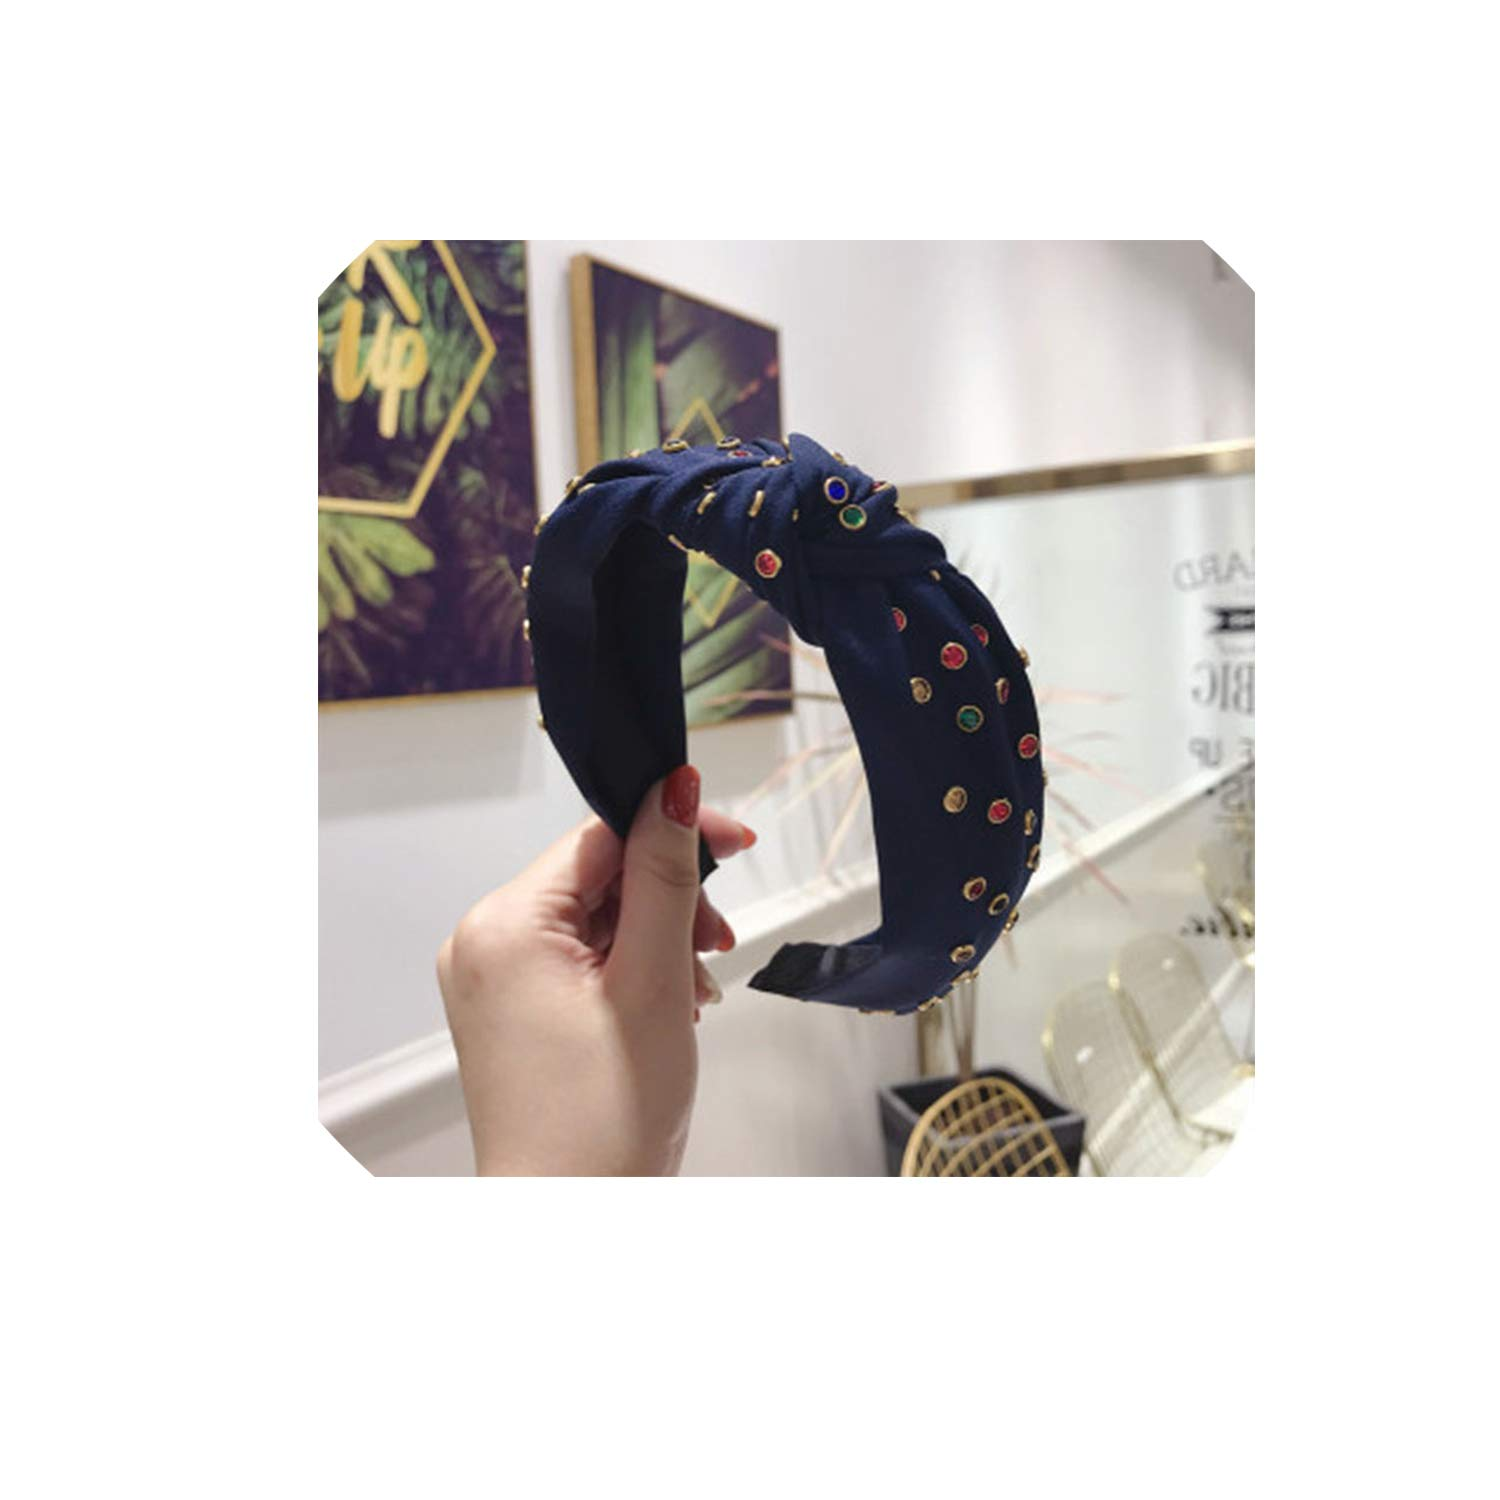 Korea New Hair Accessories Crystal Decorated Solid Color Top Knotted Hairbands For Women Wide Hair Bands Headwear,yellow